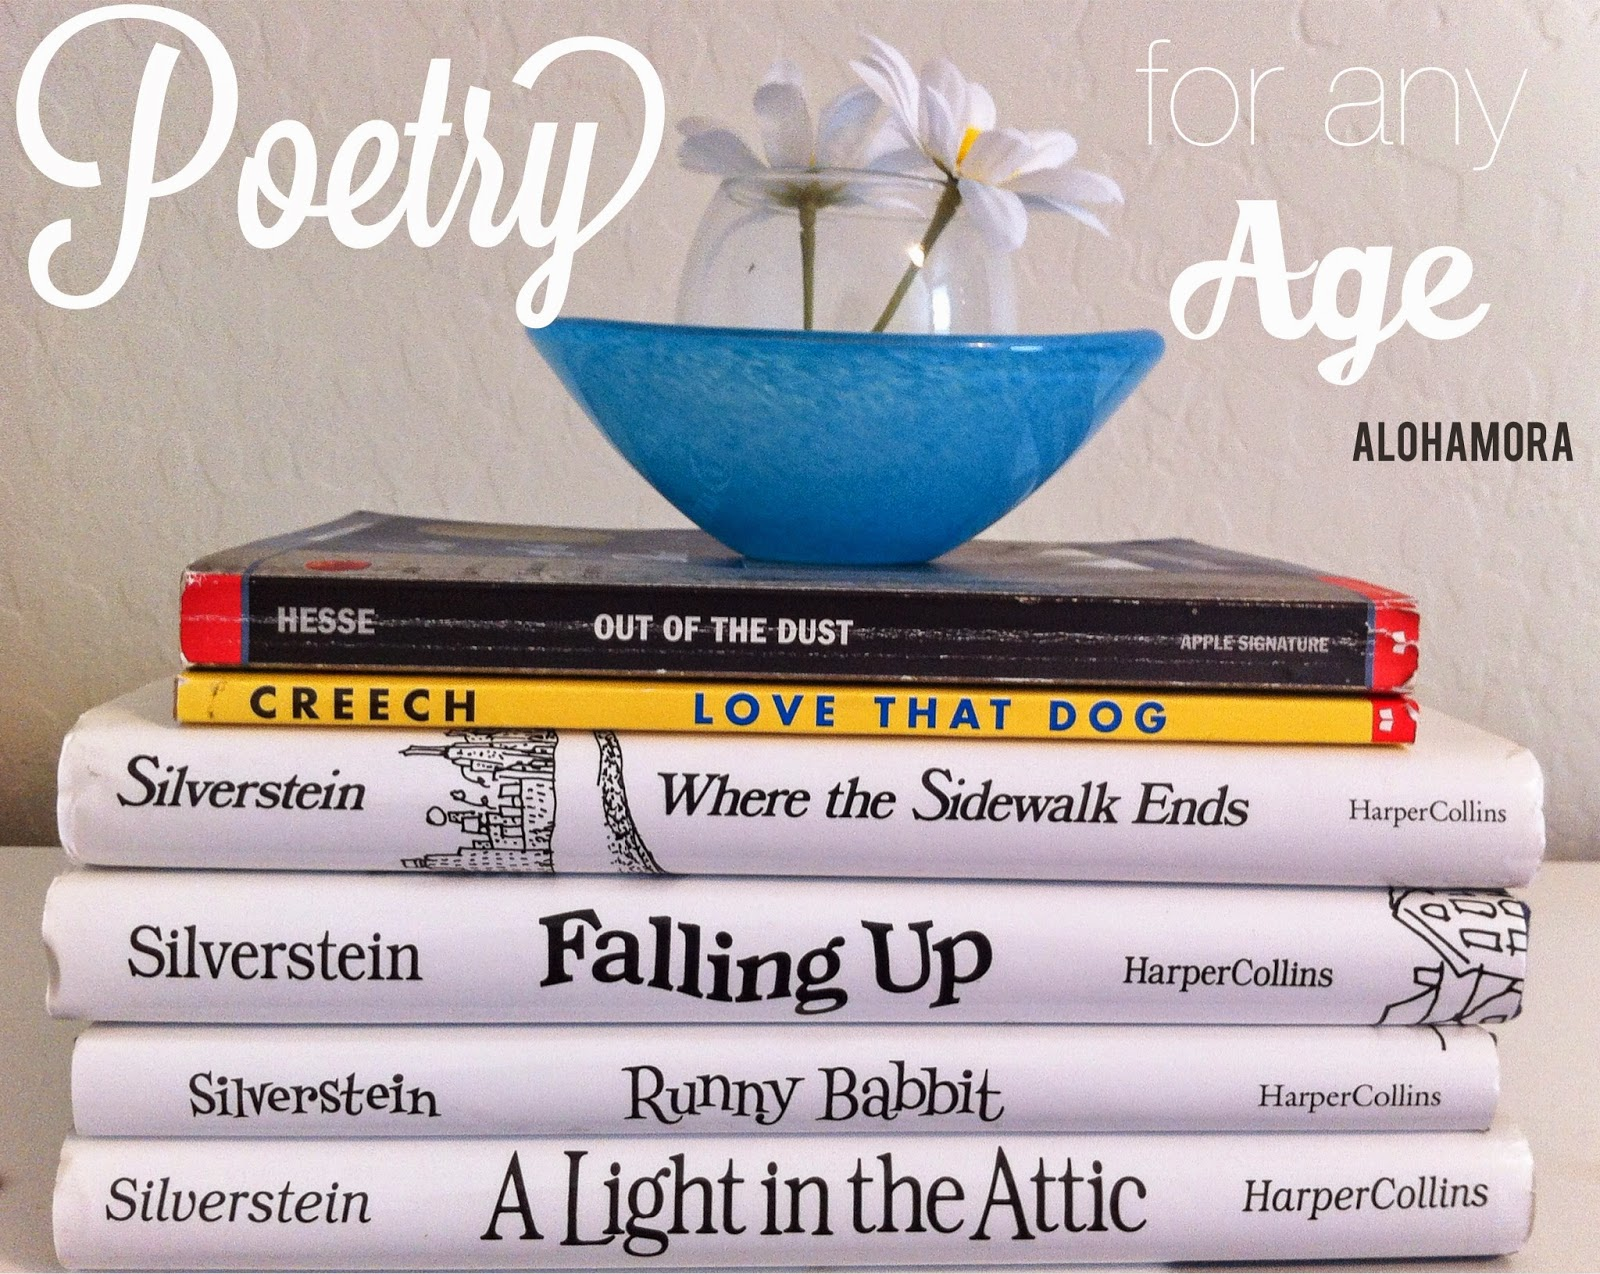 5 Great Poetry books no matter your age.  You'll be entertained, learn a lot, and be able to use them in lessons/presentations. Alohamora Open a Book  http://www.alohamoraopenabook.blogspot.com/